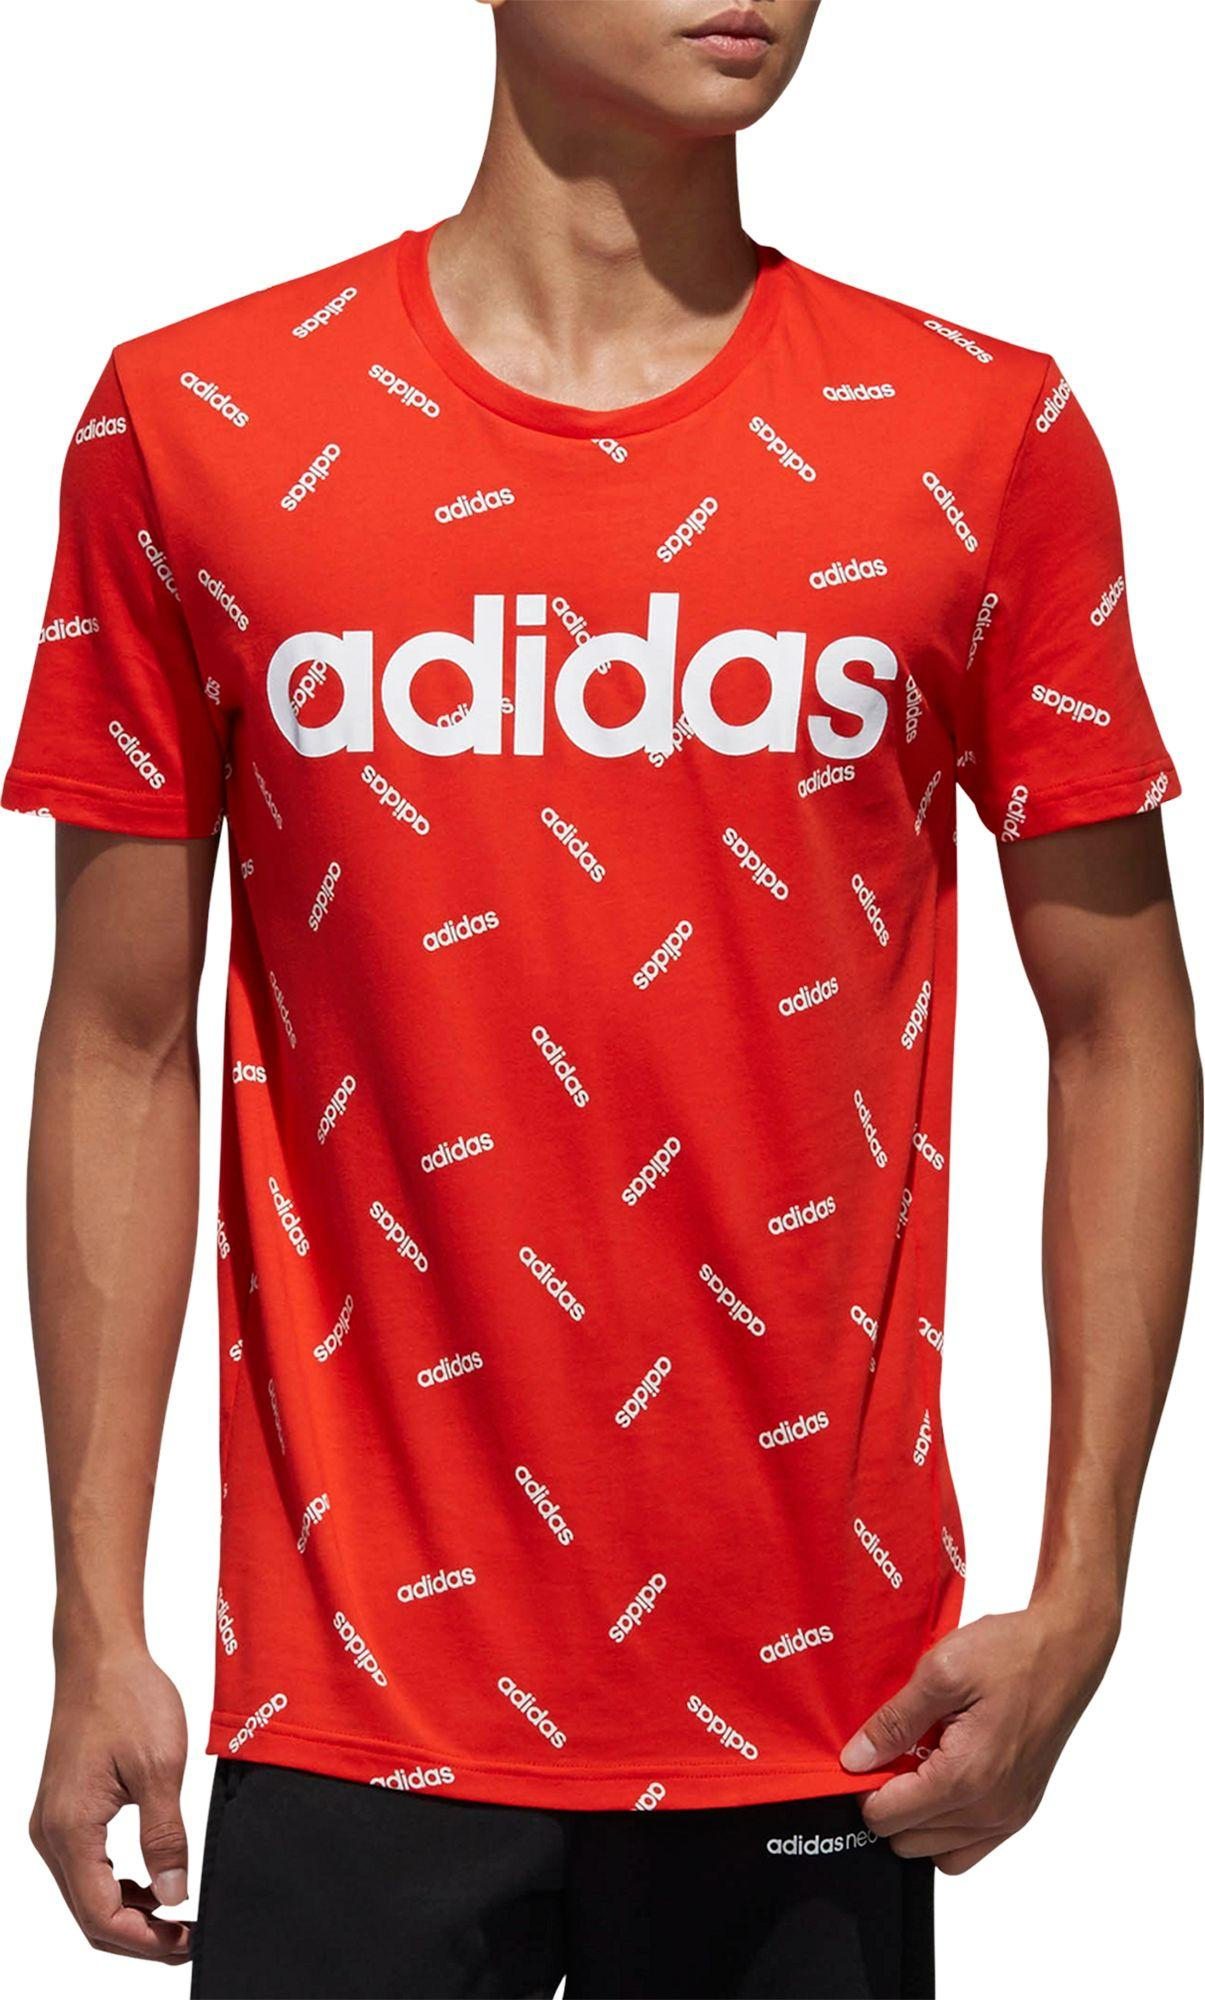 76ed147e Adidas - Red Printed Graphic T-shirt for Men - Lyst. View fullscreen